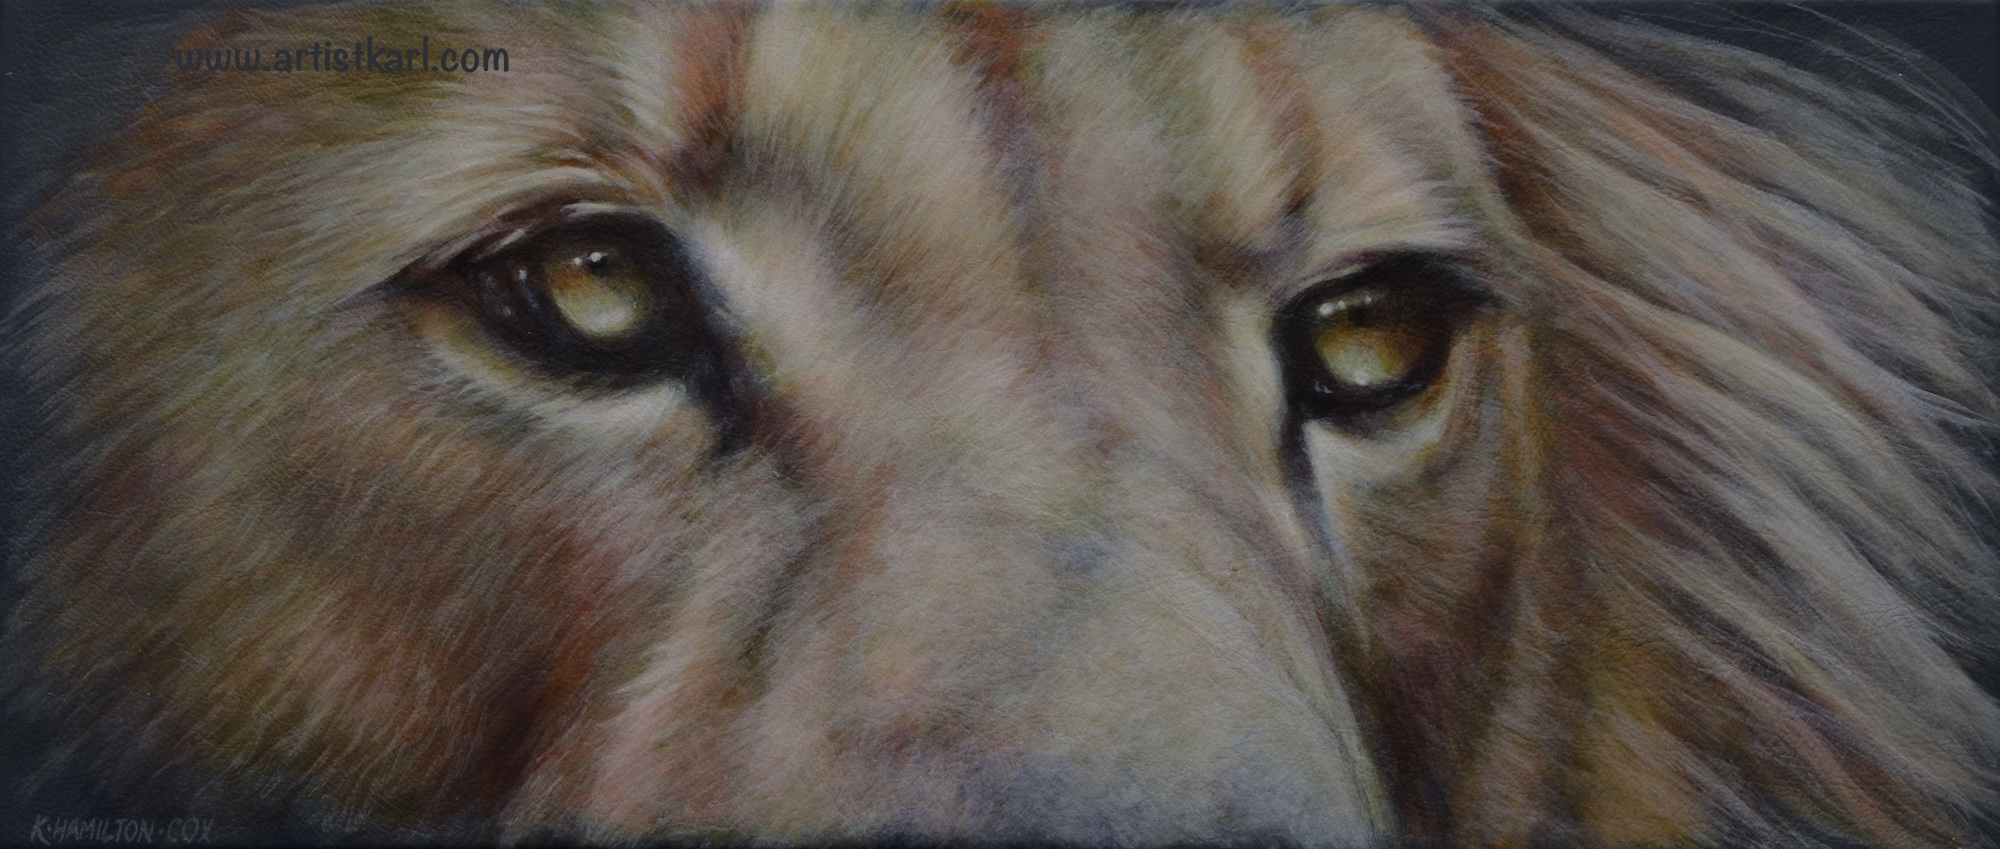 Cats Eyes Series - lion